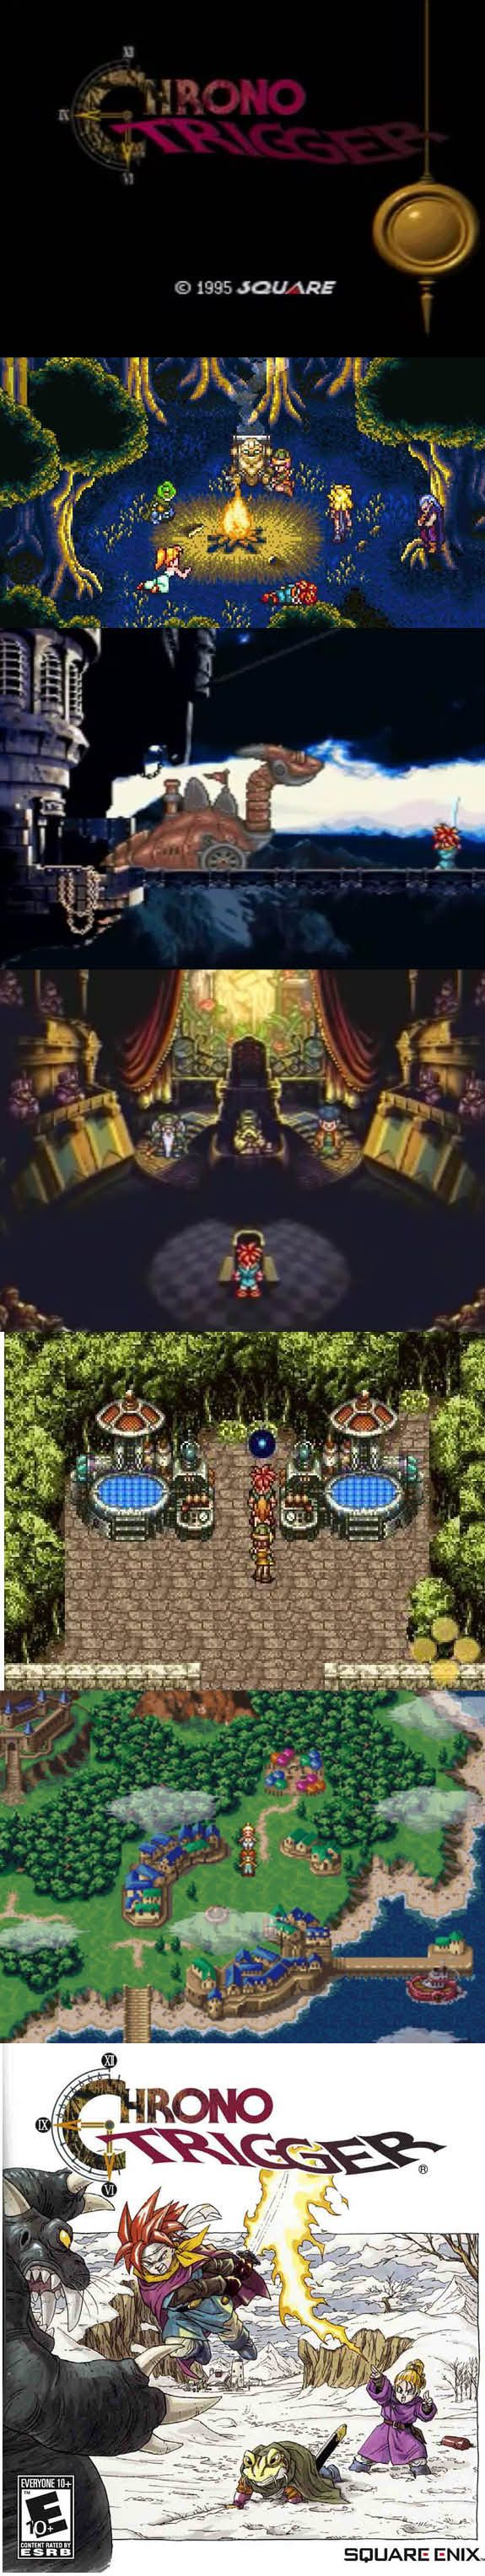 #RetroGamer The #Nintendo DS version of #ChronoTrigger was released today in 2008! http://www.levelgamingground.com/chrono-trigger-review.html